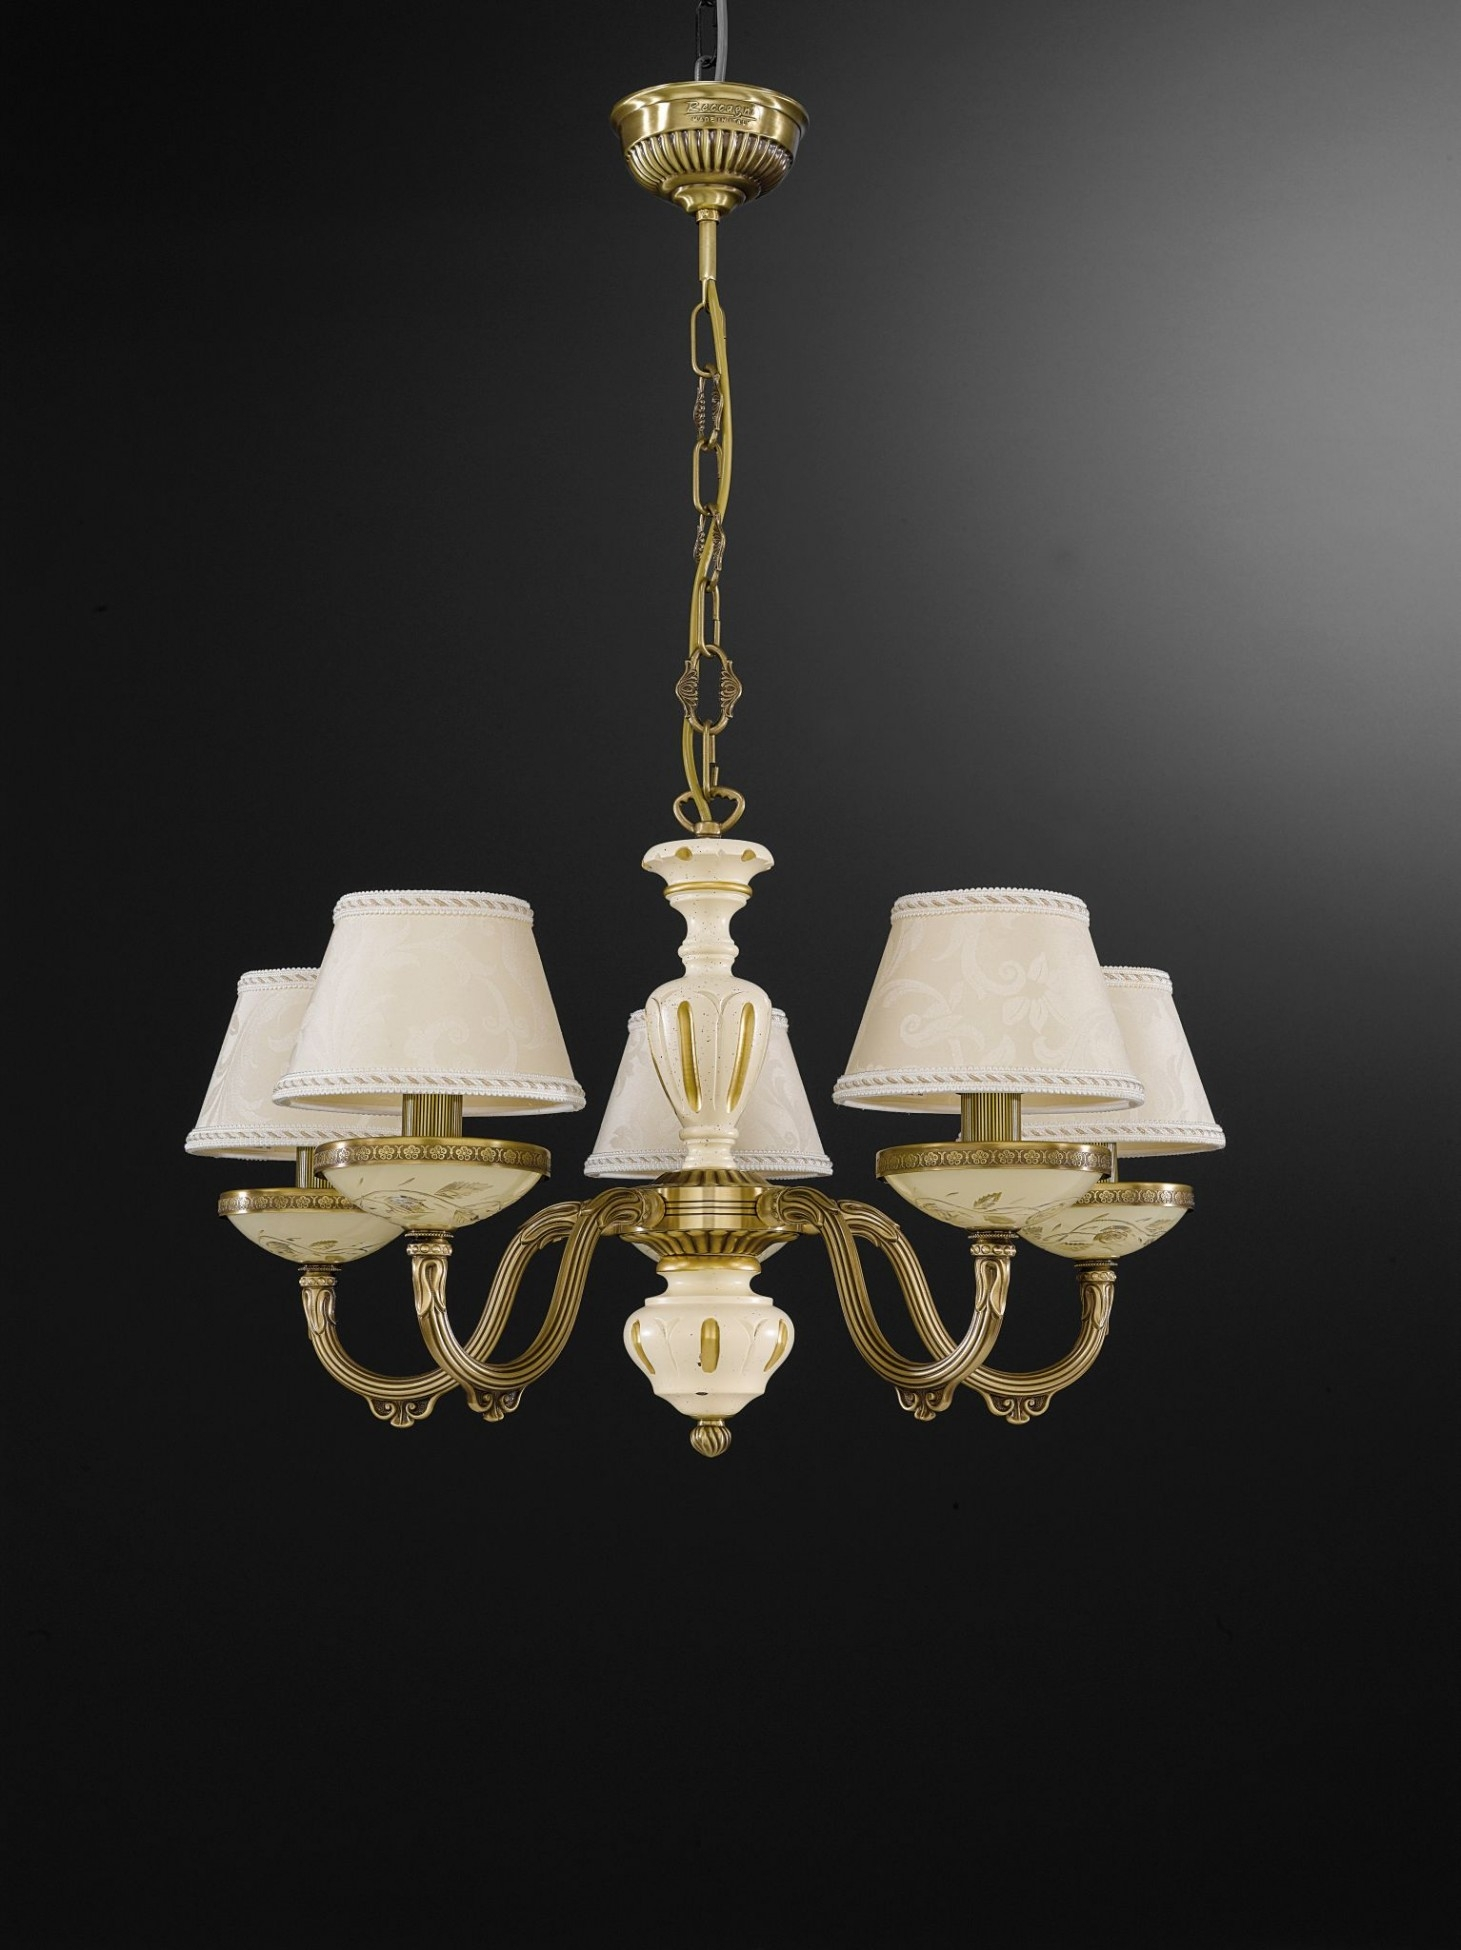 5 Lights Brass Wood And Cream Glass Chandelier With Lamp Shades With Regard To Cream Chandelier Lights (View 14 of 15)